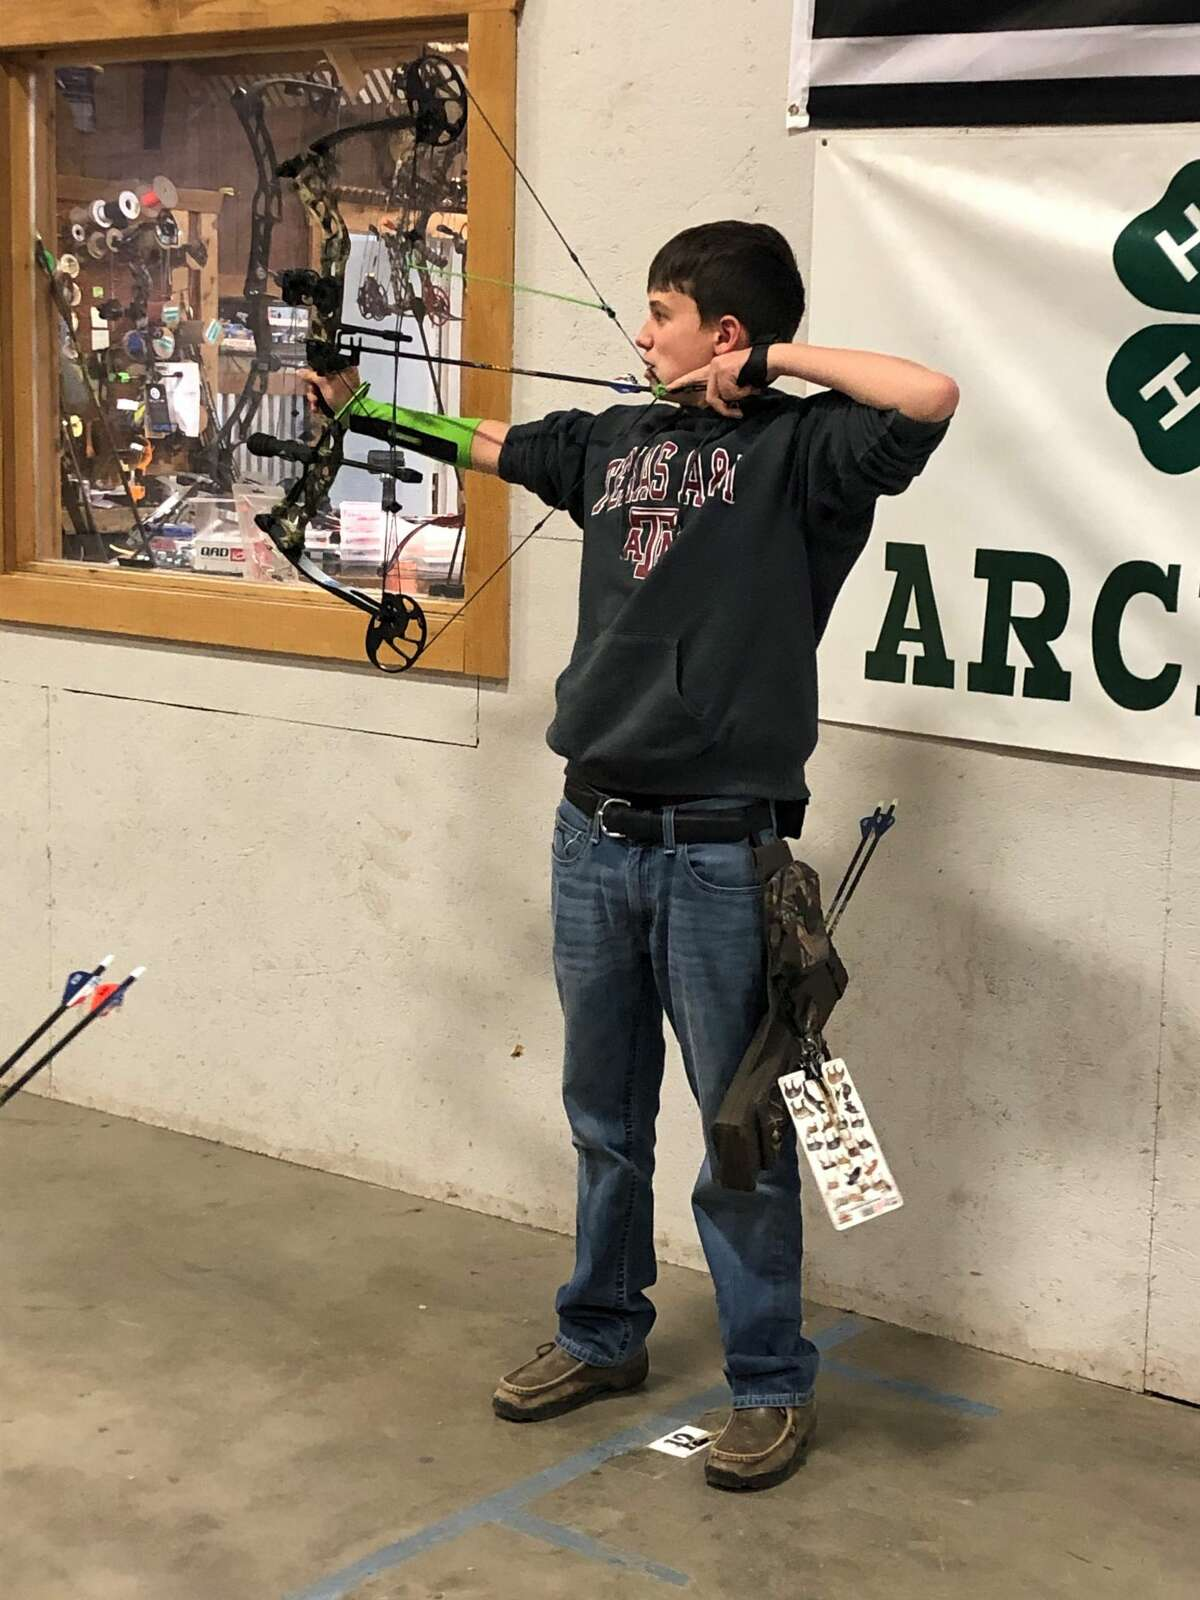 The Running Water Draw Shooting Sports Club archery group will be having a safety meeting and practice on April 5 from 5-7 p.m. at the Ollie Liner Center in Plainview